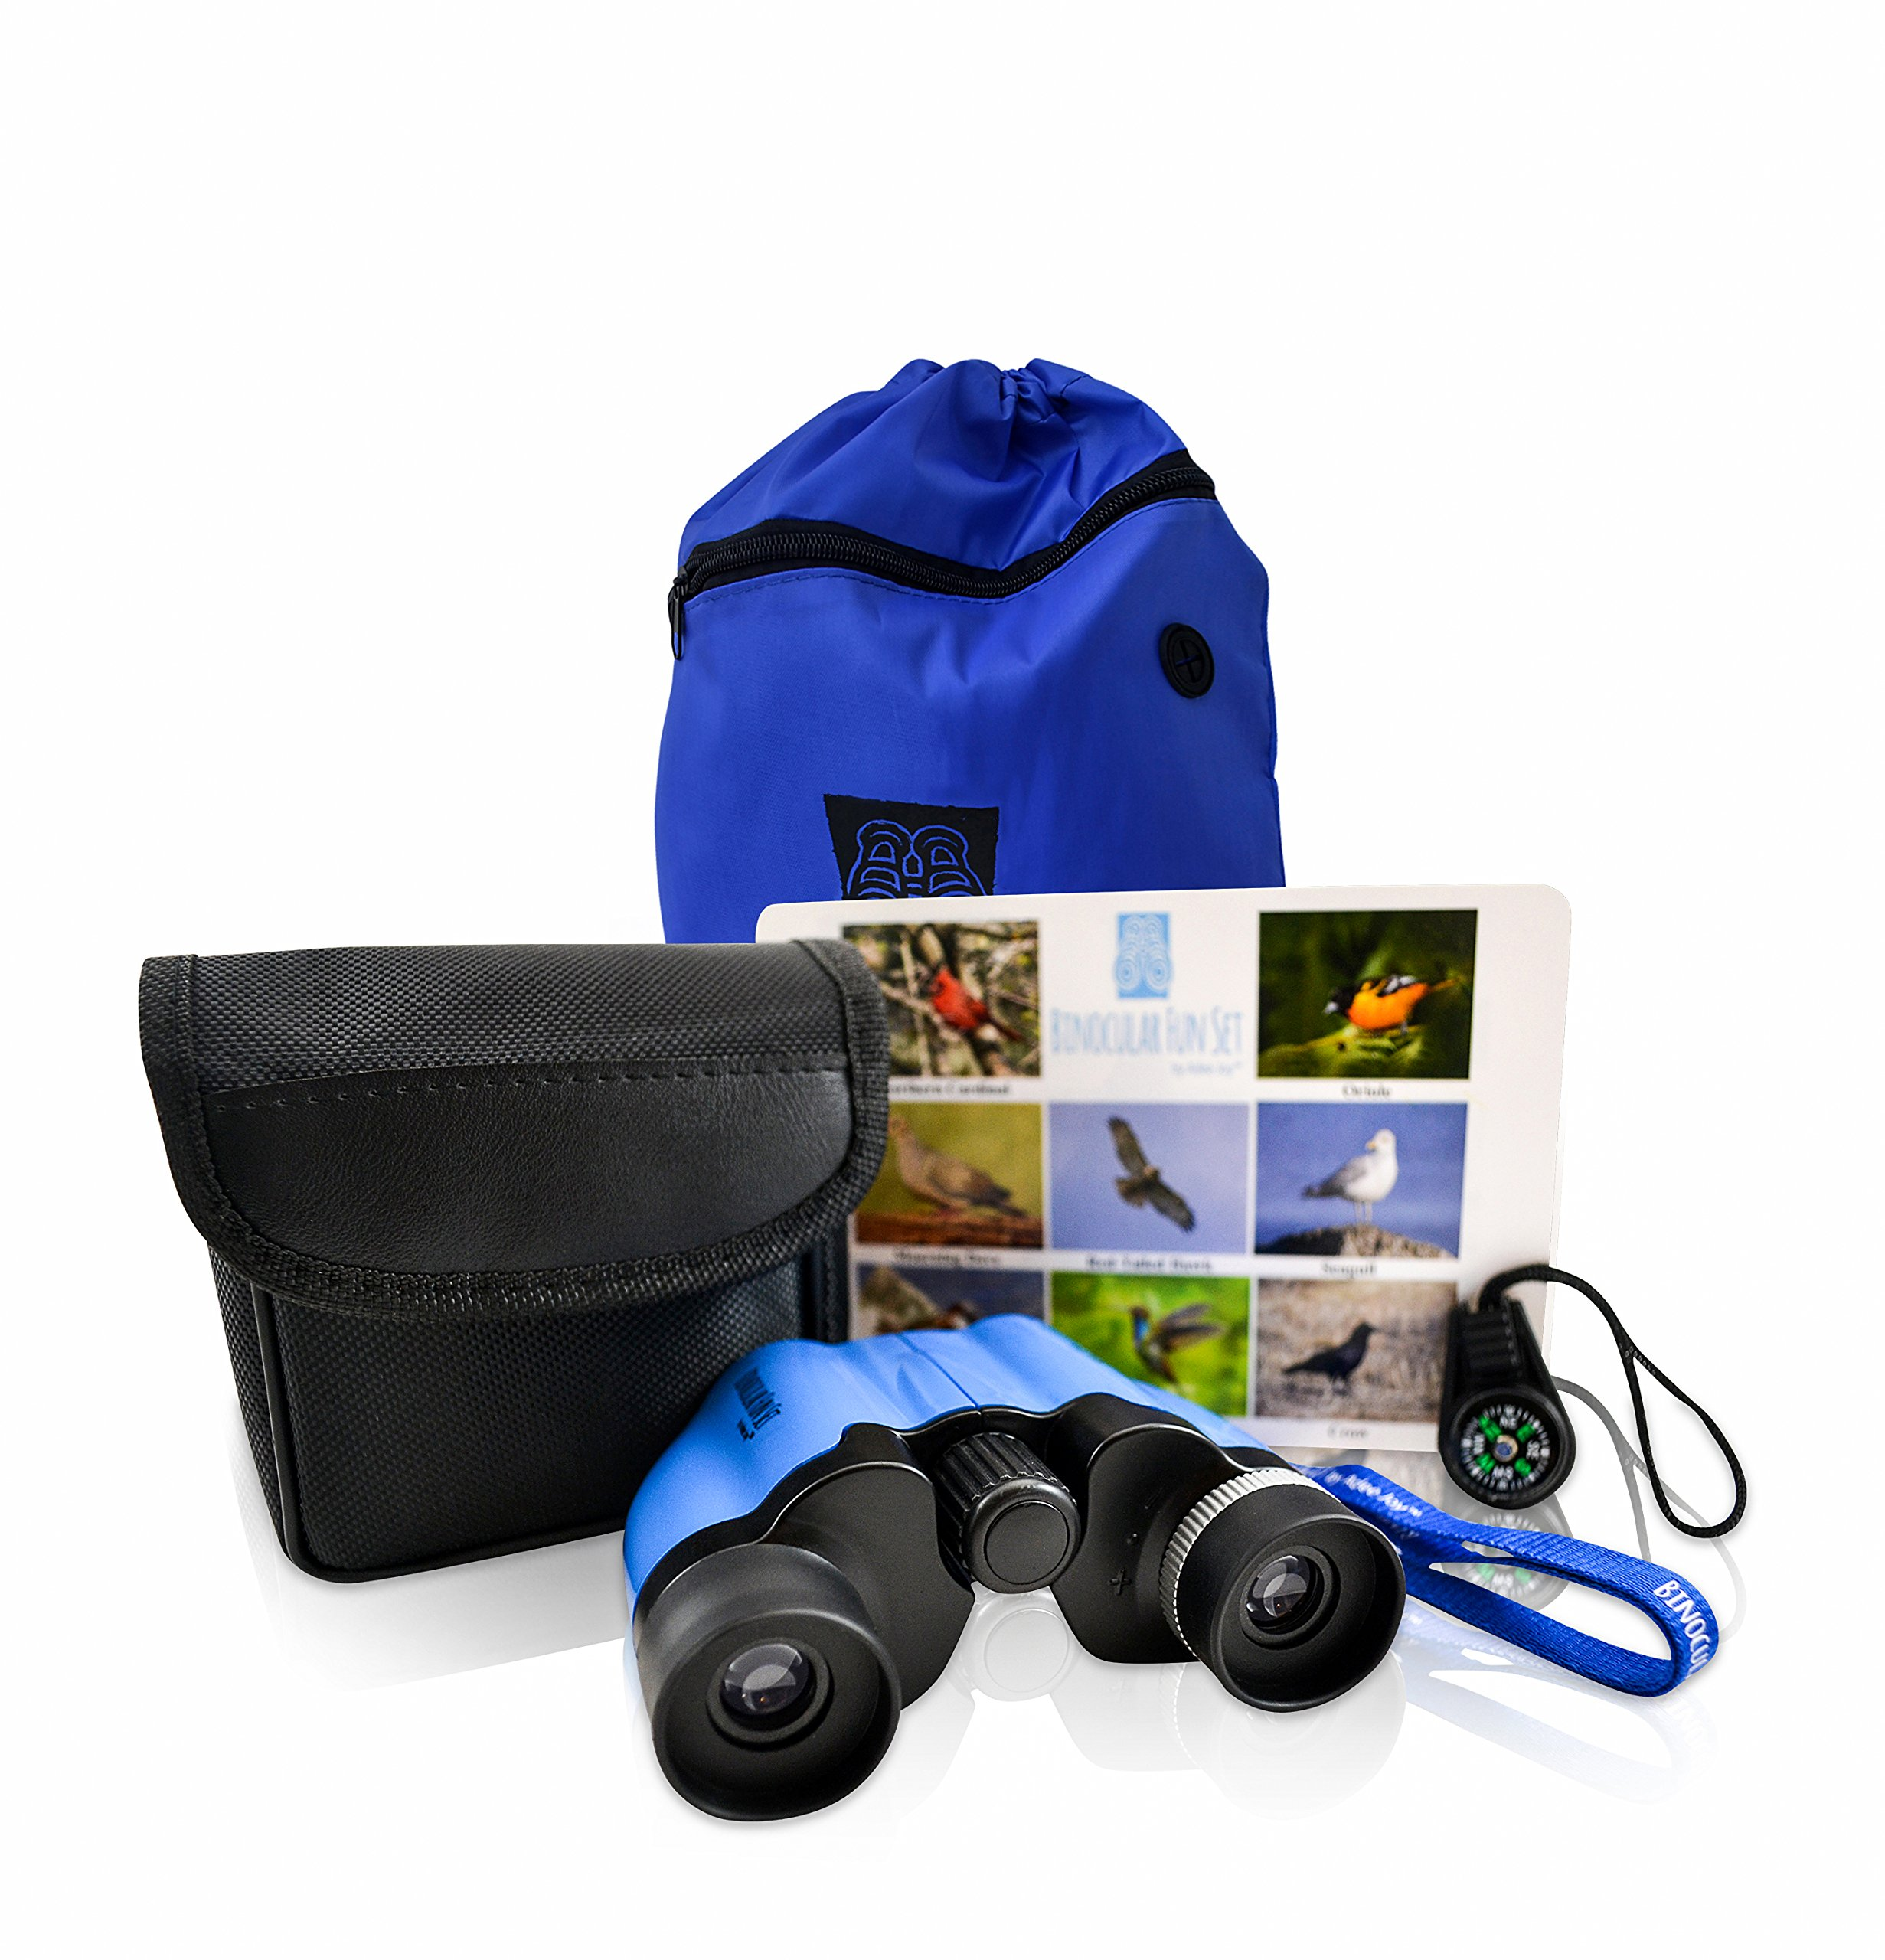 Kids 8X21 Binocular Fun Set for Bird Watching Adventure, Safari, Discovery and Exploring for Boys and Girls with Case, Carrying bag, Compass, Learning cards and Breakaway Lanyard by Adee Joy